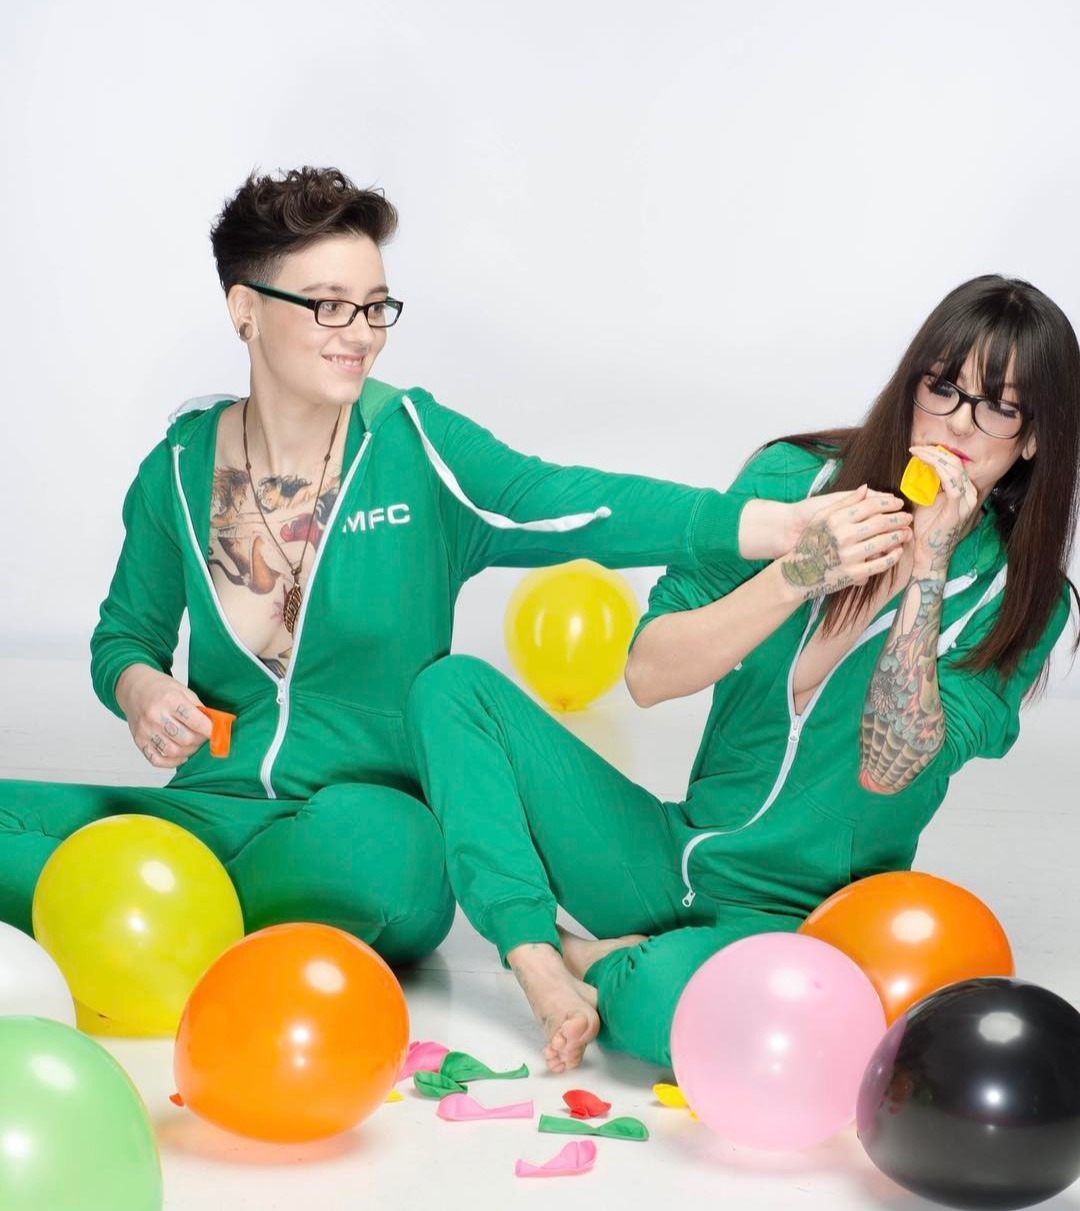 Olivia Black shares a joyous time with her lesbian wife, Maria Plaza. The two are sitting next to each other wearing a same green attire. They are surrounded by balloons. Olivia is trying to blow up the balloon while her wife is holding her hands.